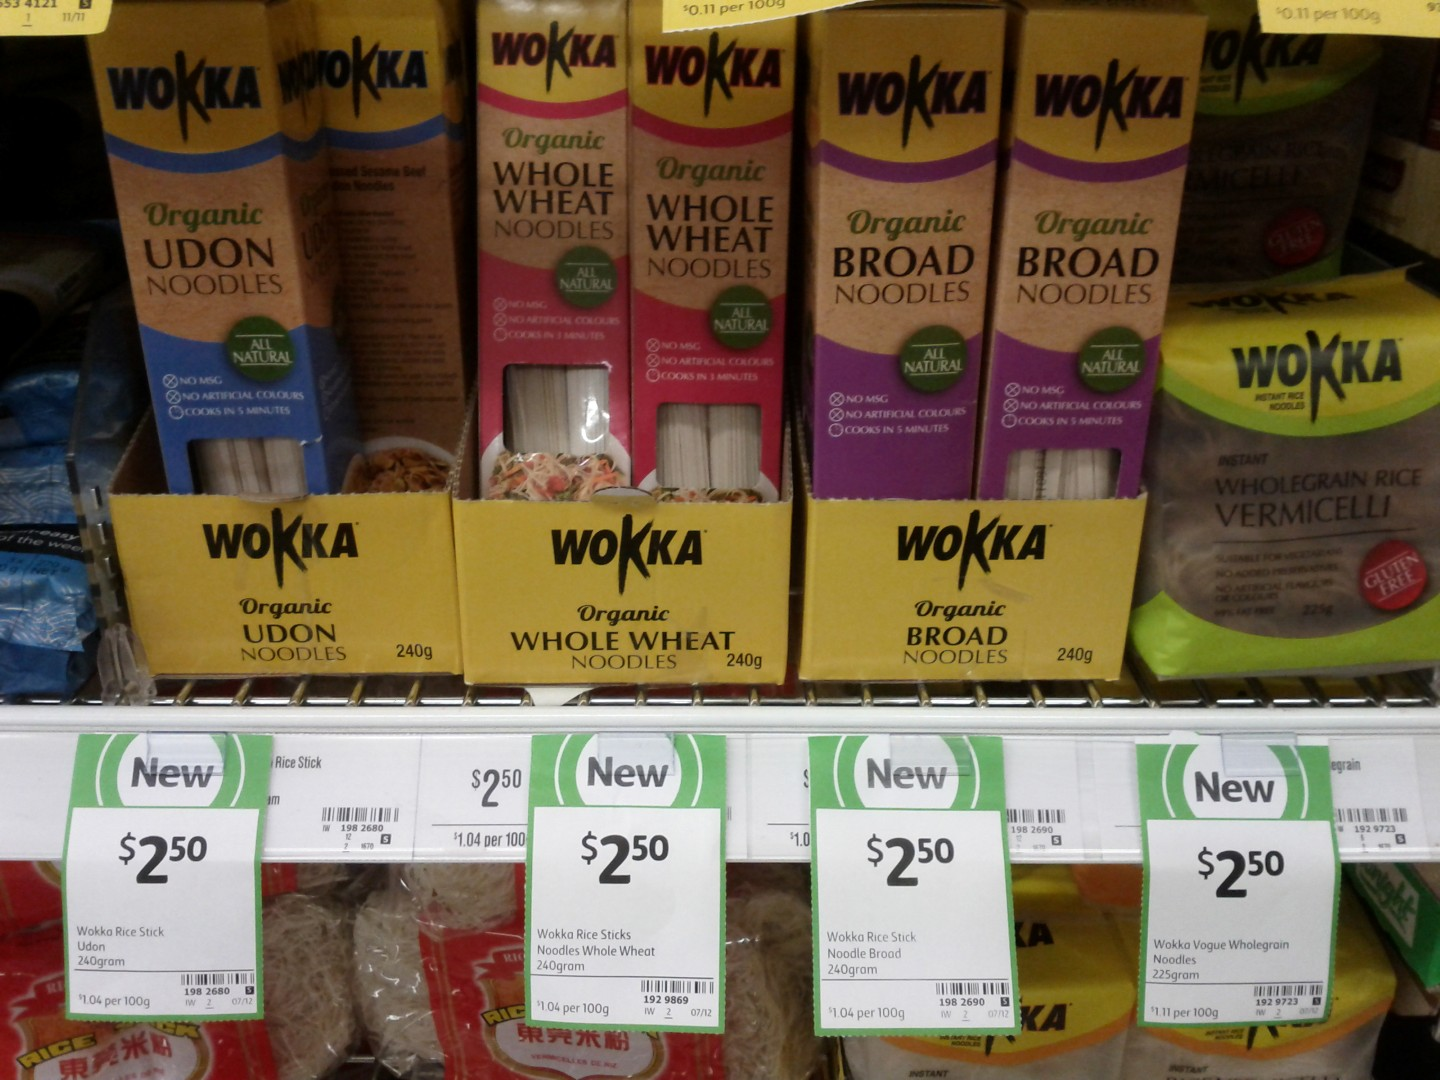 Wokka 240g Organic Udon Noodles, Whole Wheat Noodles, Broad Noodles